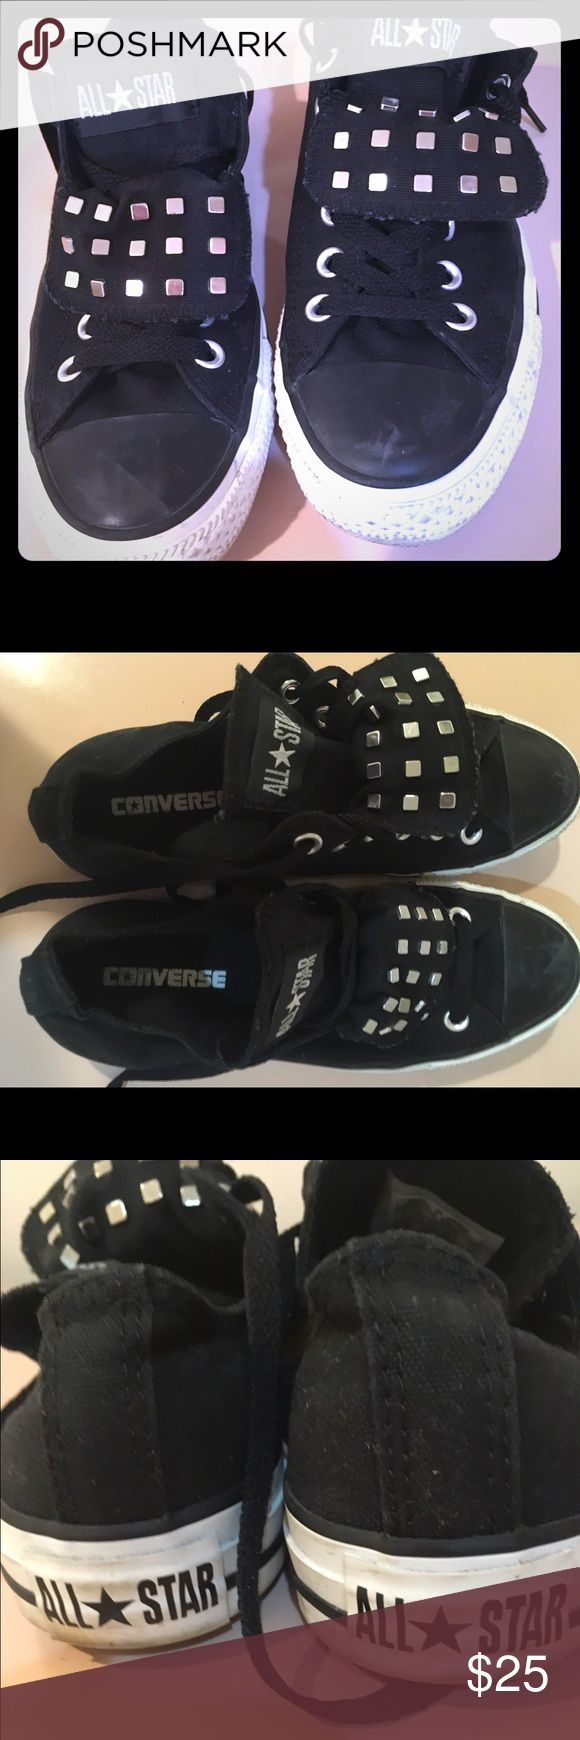 Converse All Star sneakers with silver studs Converse All Star black sneakers with silver square studs Converse Shoes Sneakers